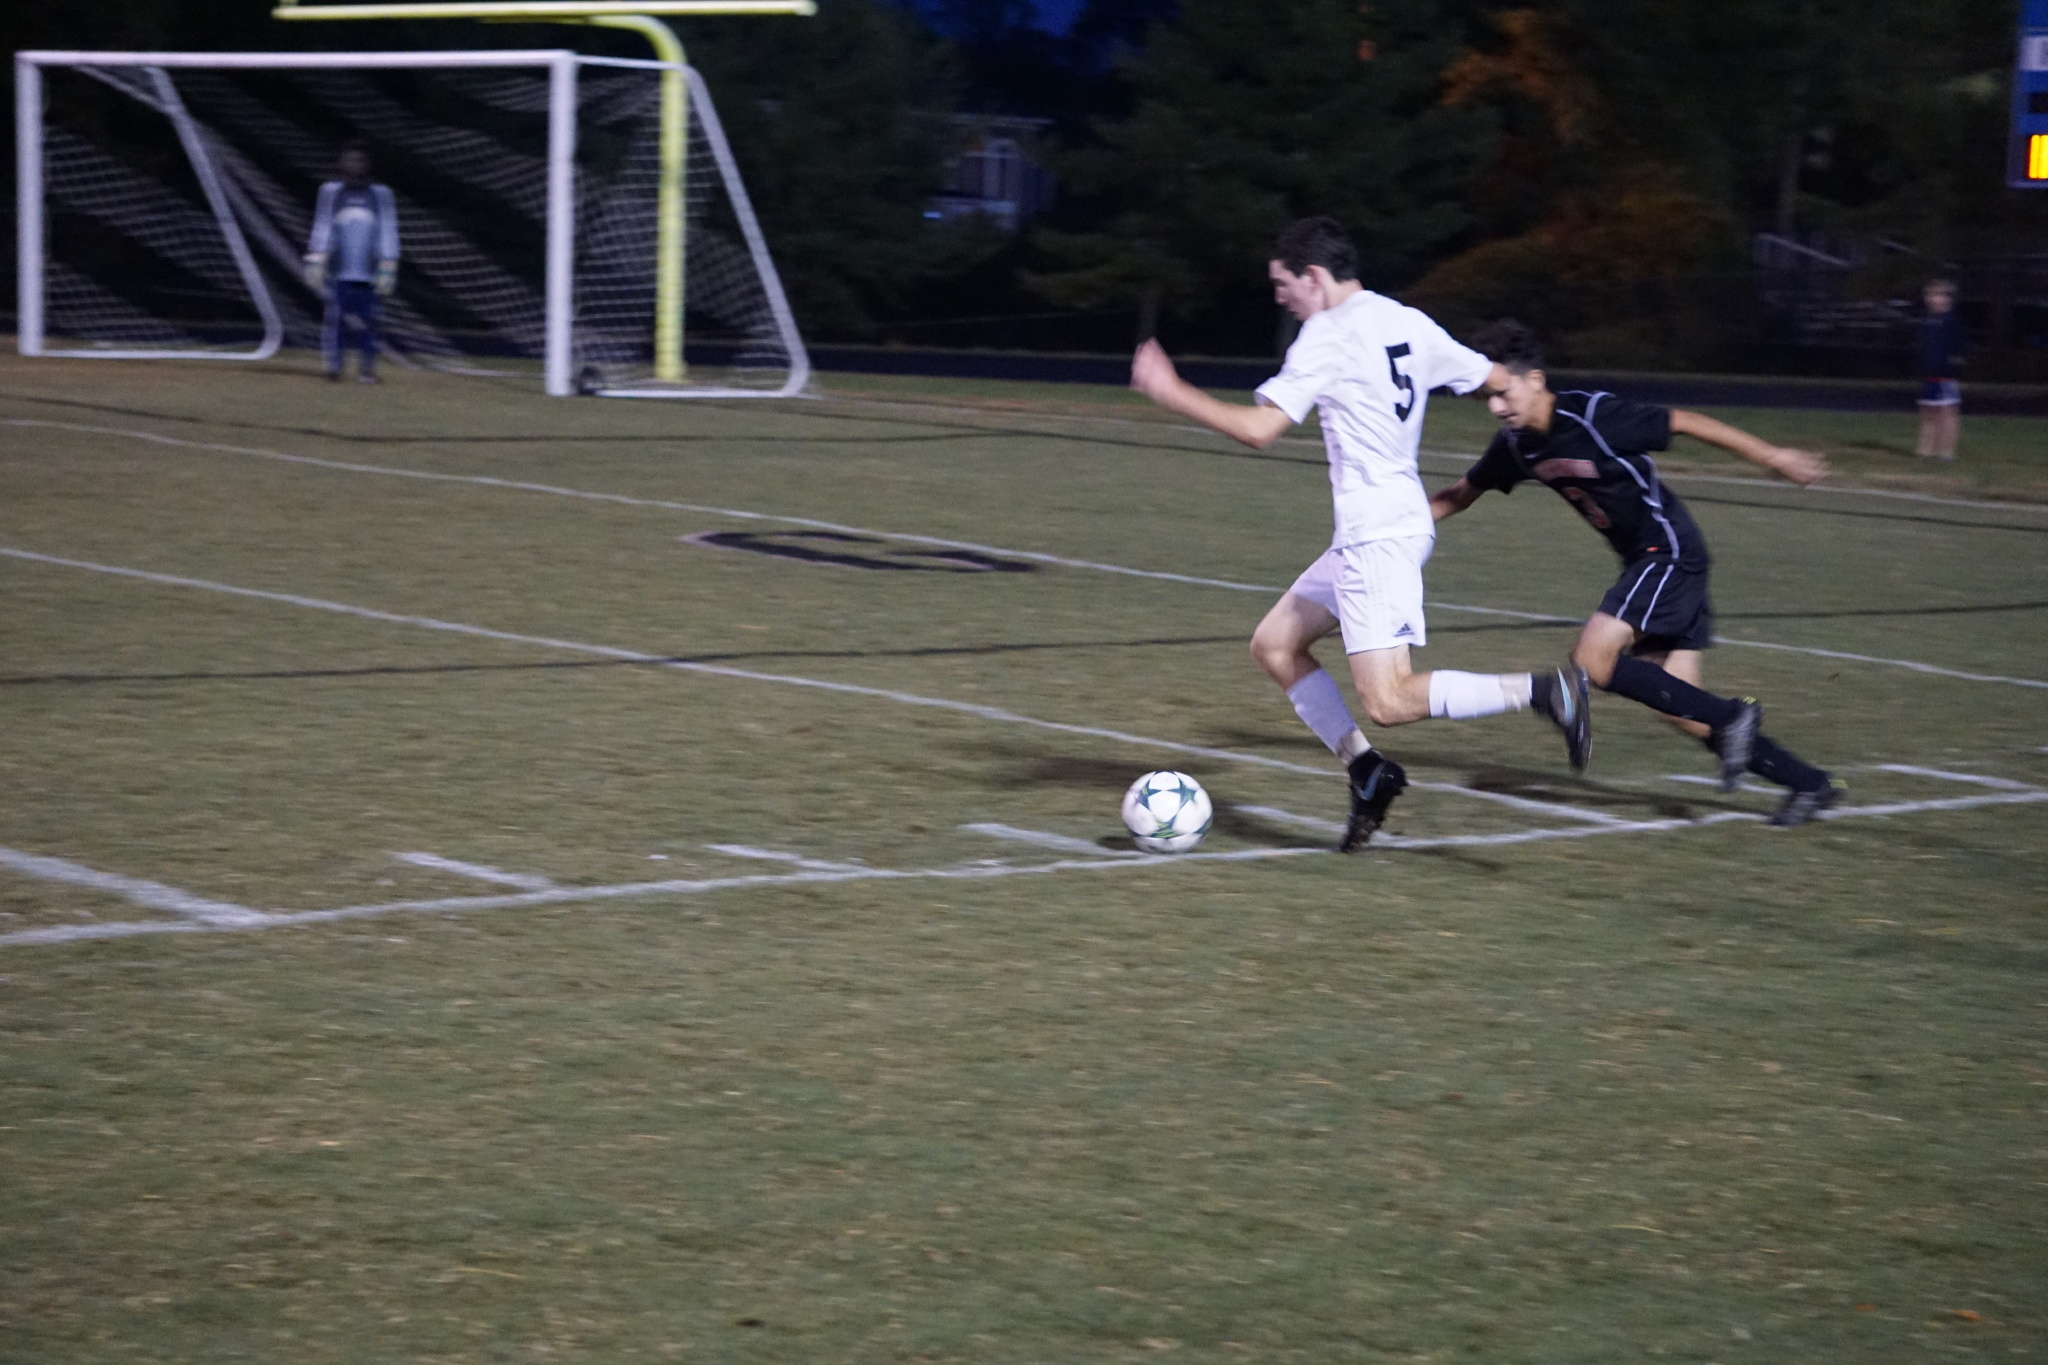 Defenseman Kevin Kaufman looks to cross the ball over the middle of the field in the team's 3–0 victory over Northwood. Photo by Lauren Gates.